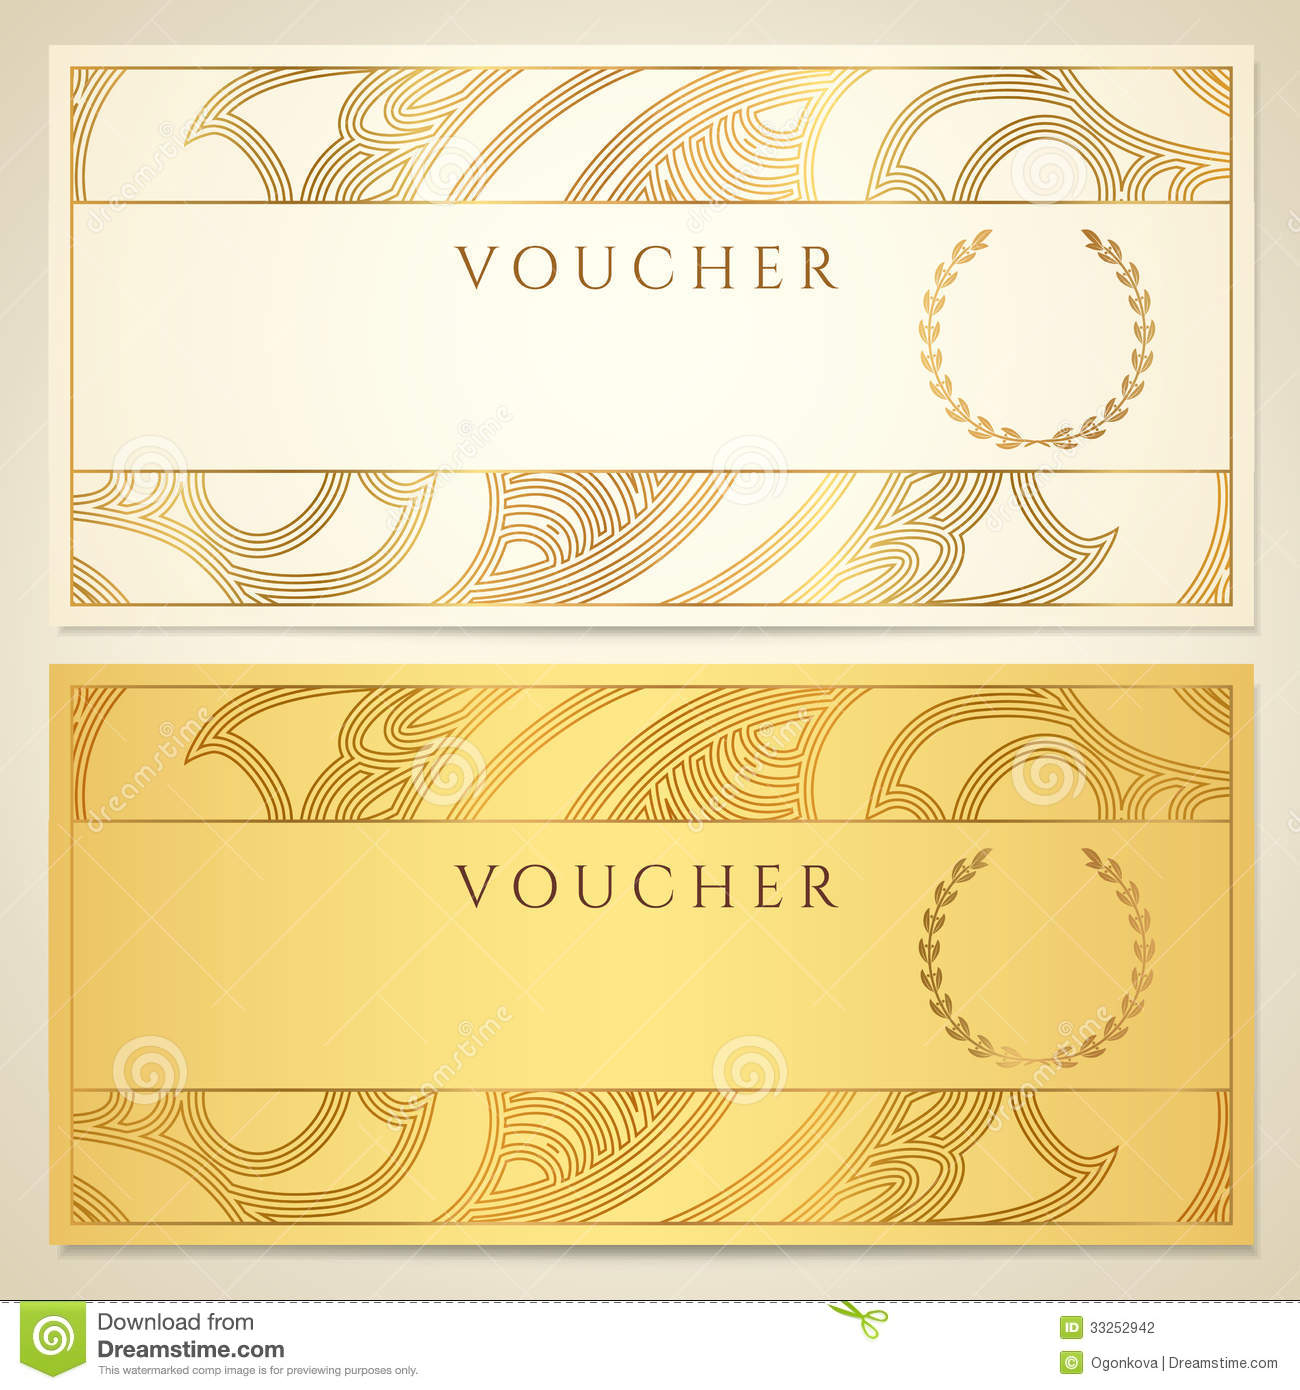 Voucher gift certificate coupon template stock photo image of voucher gift certificate coupon template royalty free stock photo 1betcityfo Images